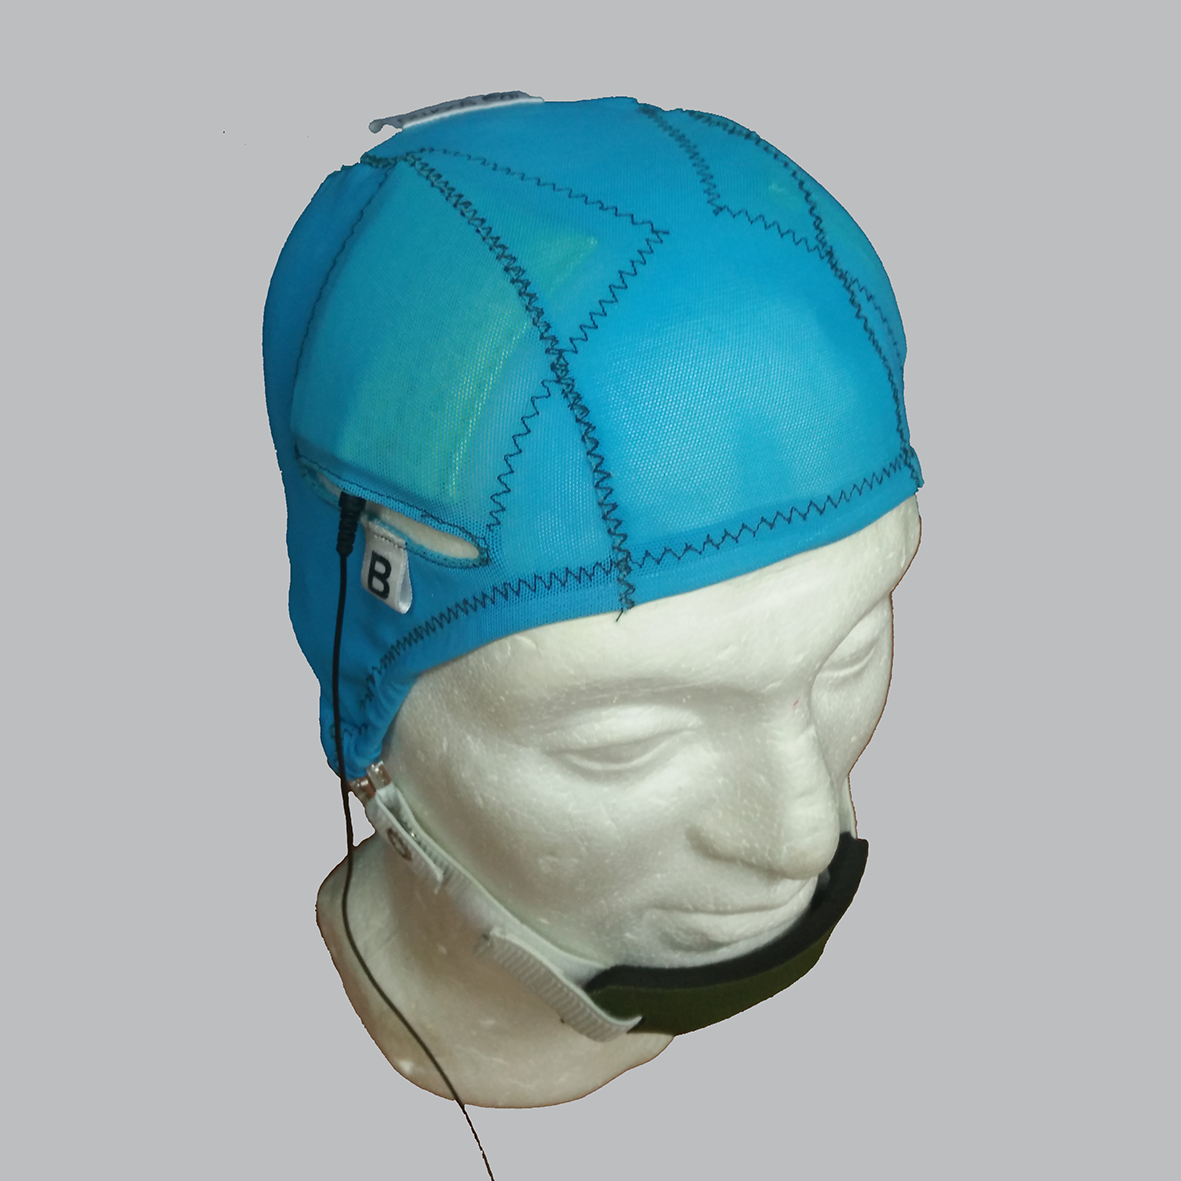 Transcranial Direct Current Stimulation Device Diy January